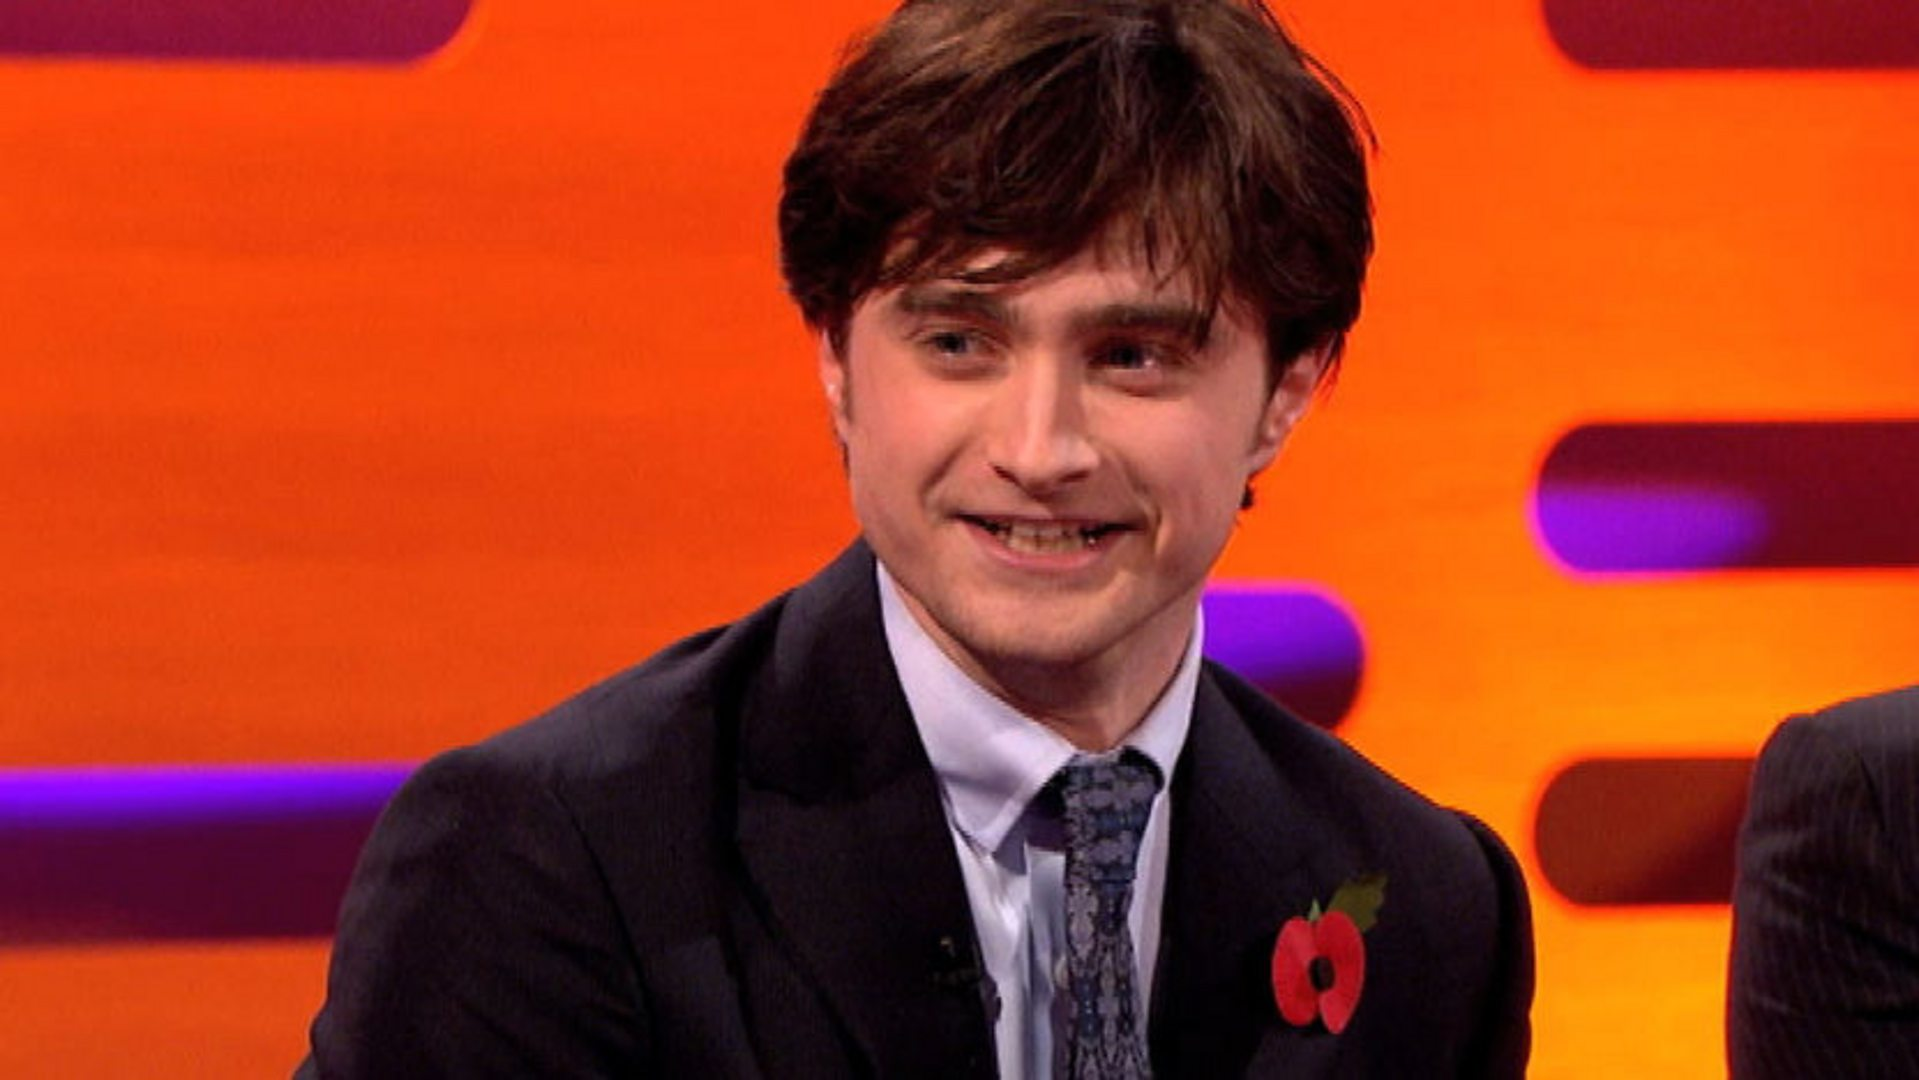 Bbc one the graham norton show series 8 episode 4 daniel bbc one the graham norton show series 8 episode 4 daniel radcliffe sings the elements urtaz Choice Image